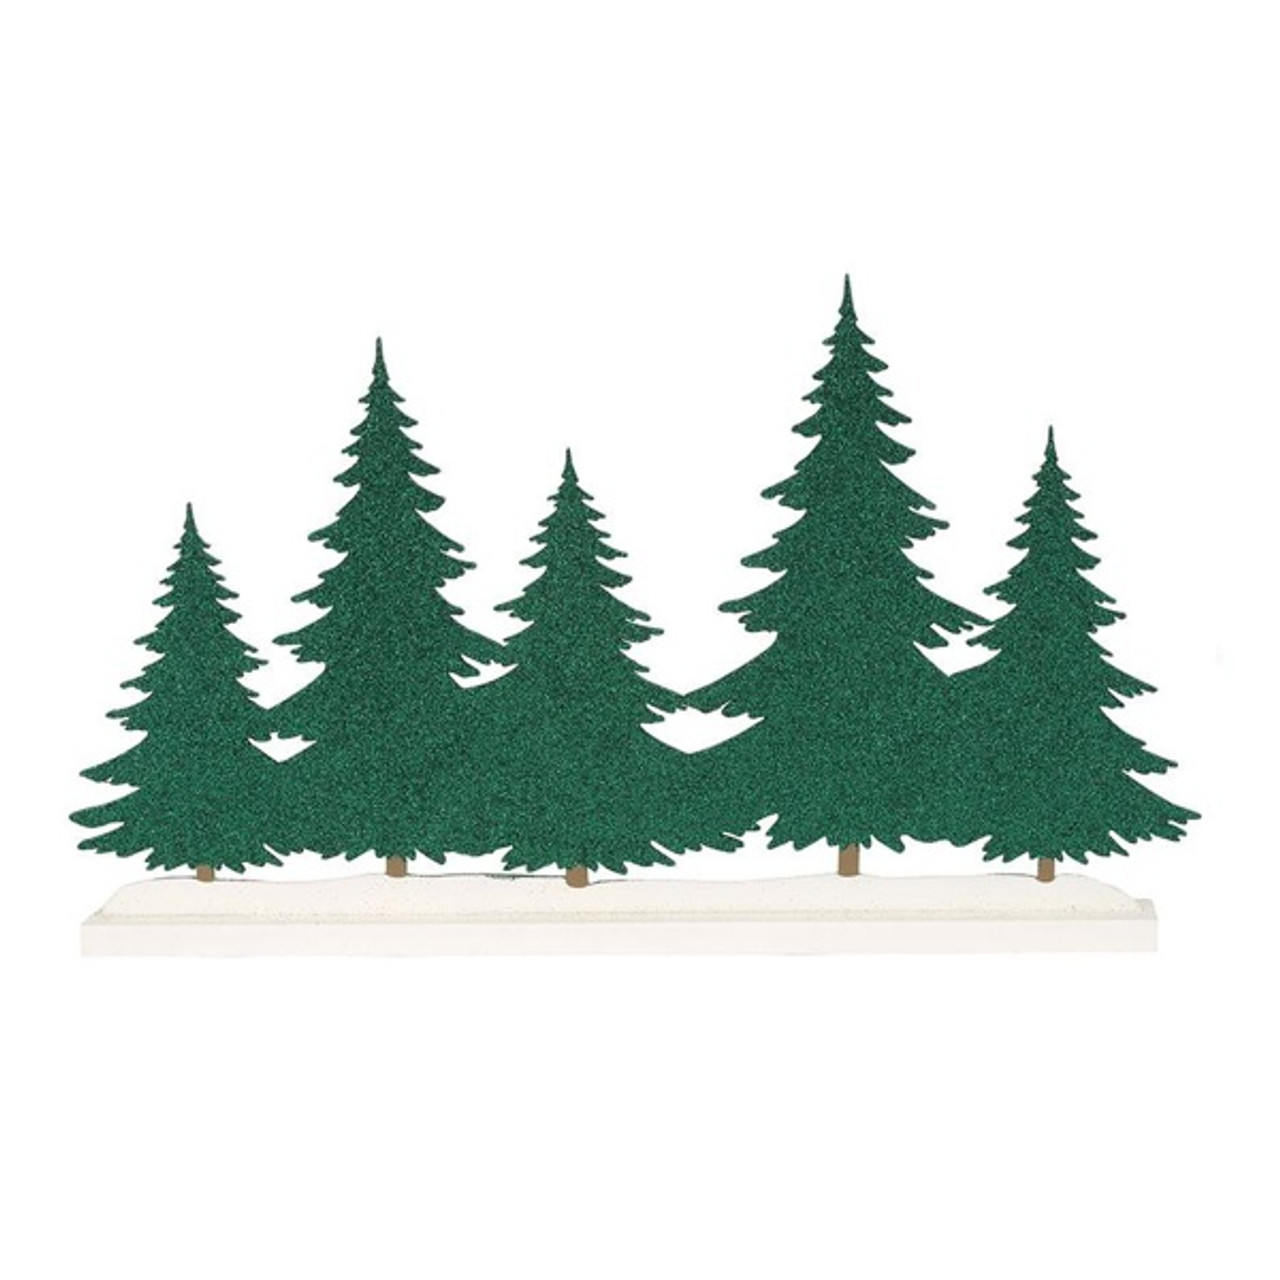 Christmas Silhouette.Department 56 Village Christmas Silhouette Tree Accessory